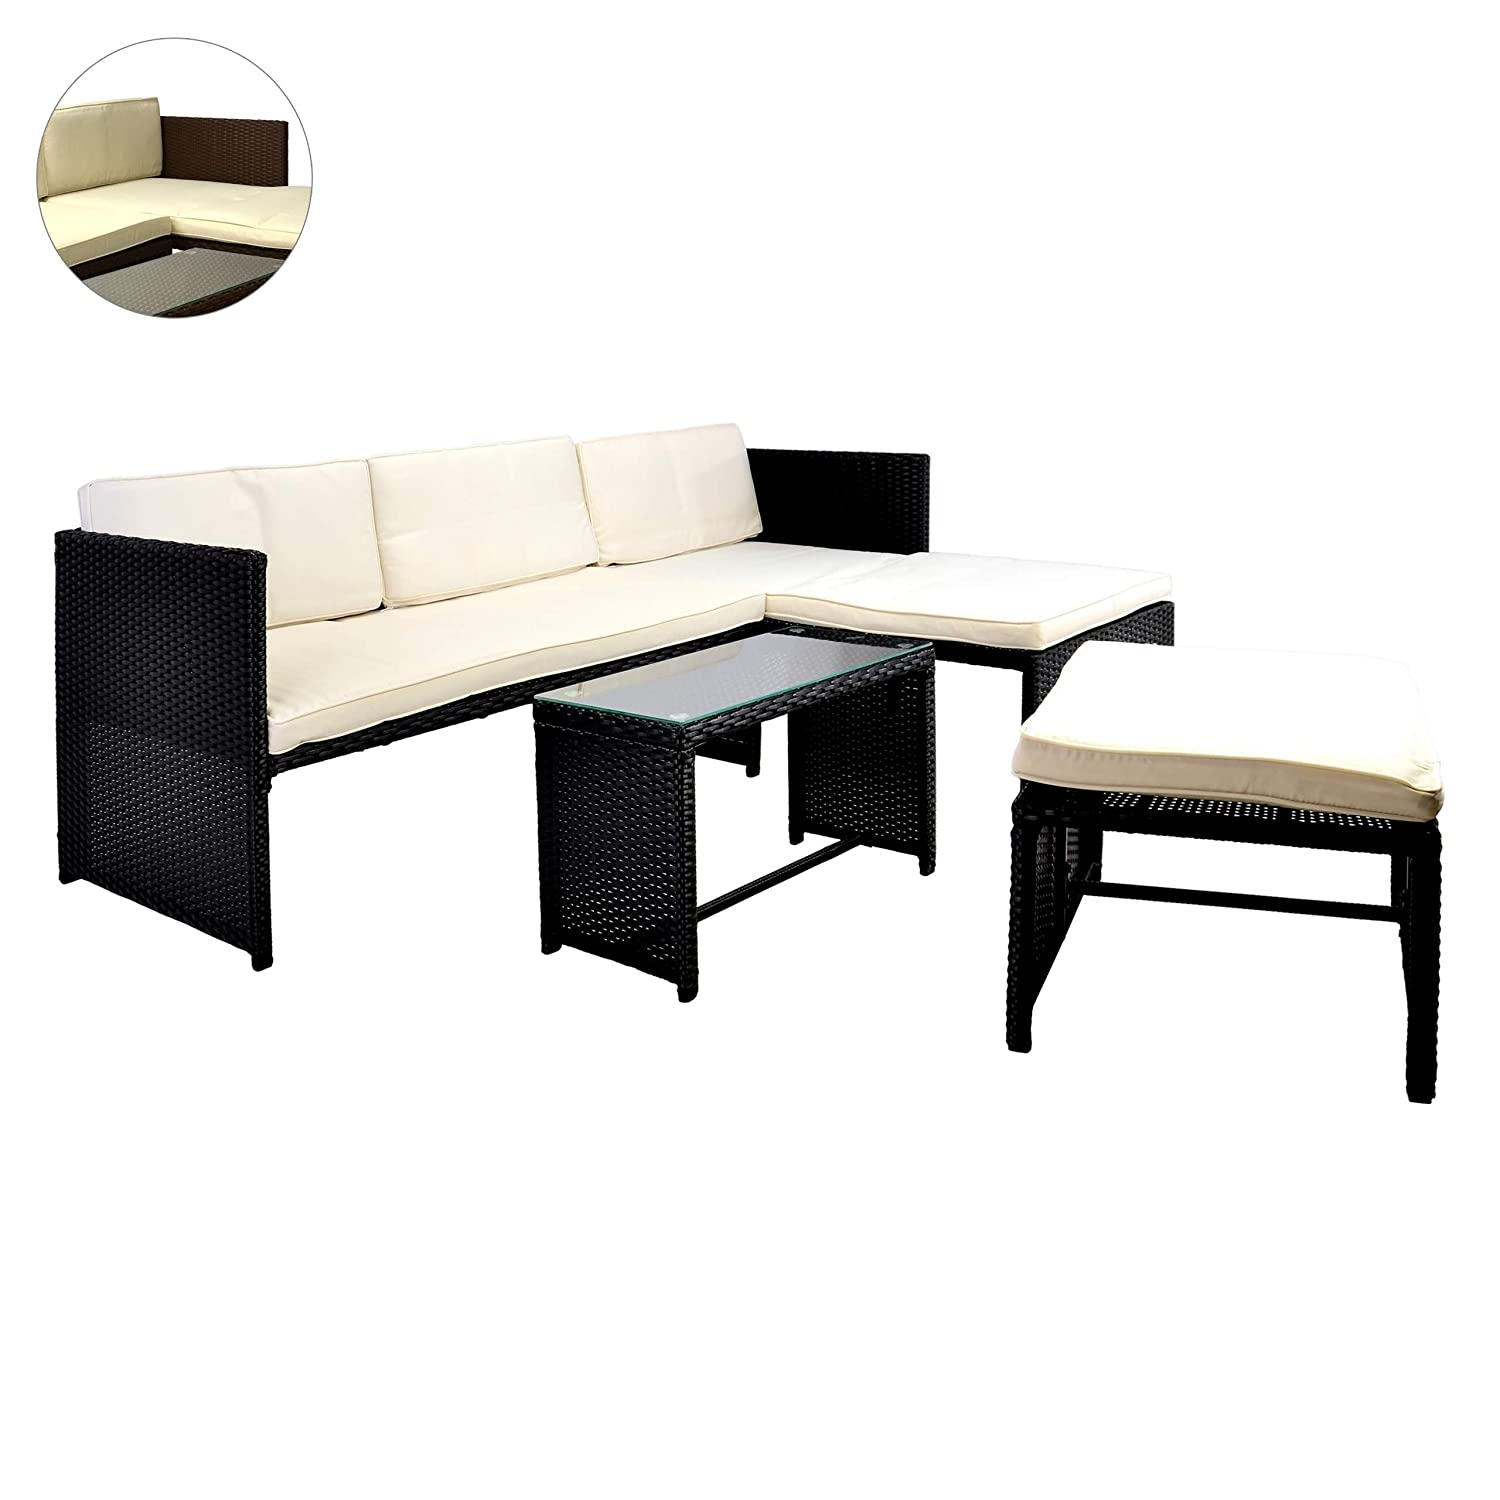 rattan sitzecke mit tisch poly rattan garnitur sitzgruppe gartenm bel terrasse schwarz g nstig. Black Bedroom Furniture Sets. Home Design Ideas